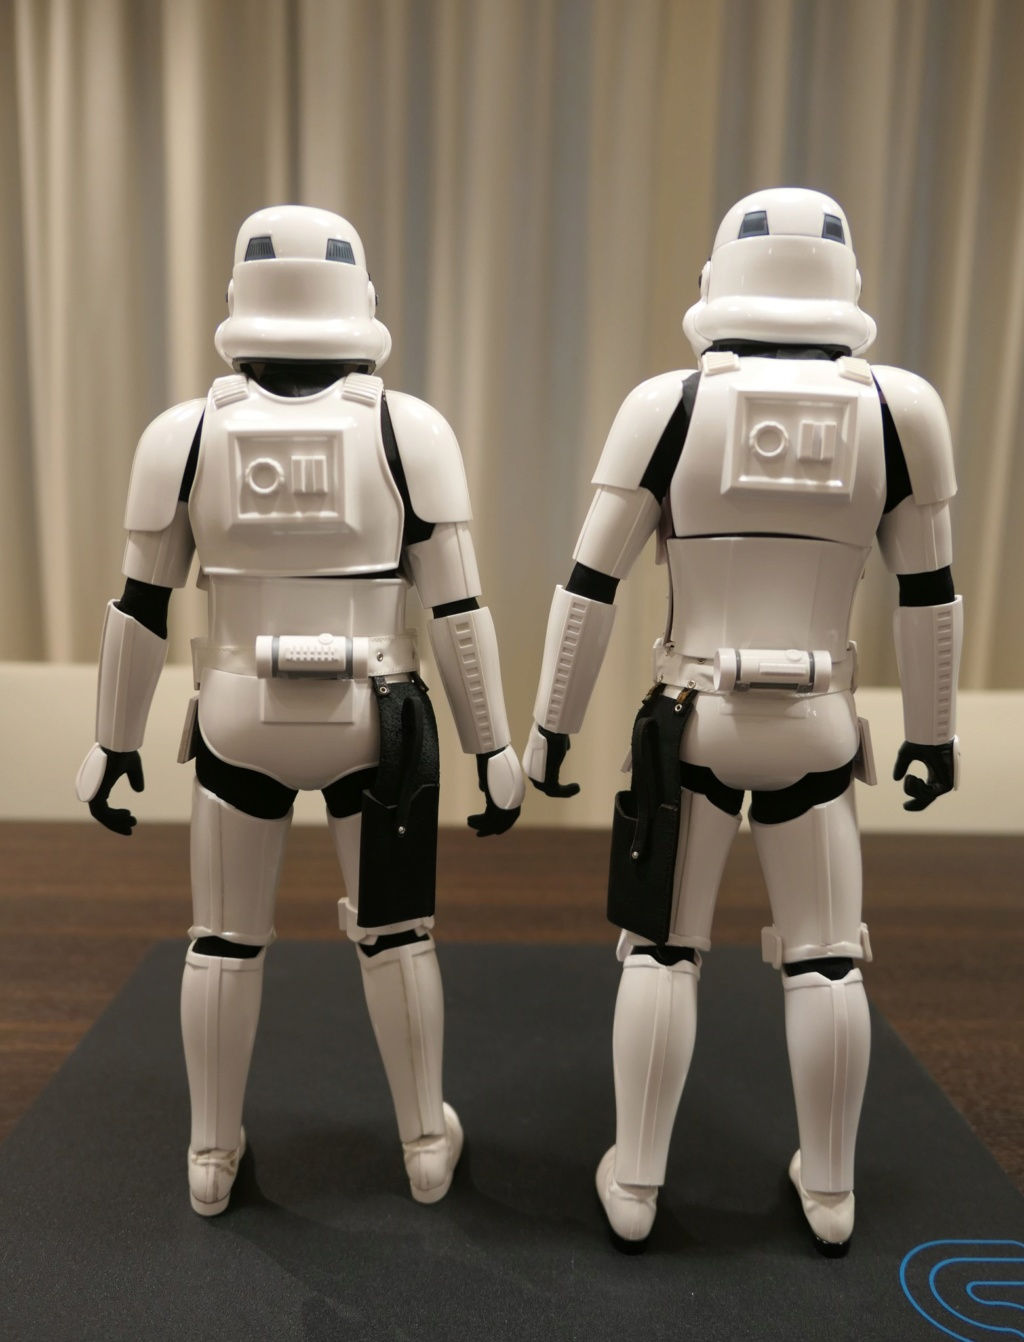 stormtrooper - NEW PRODUCT: HOT TOYS: STAR WARS STORMTROOPER (DELUXE VERSION) 1/6TH SCALE COLLECTIBLE FIGURE 4qrm8m10